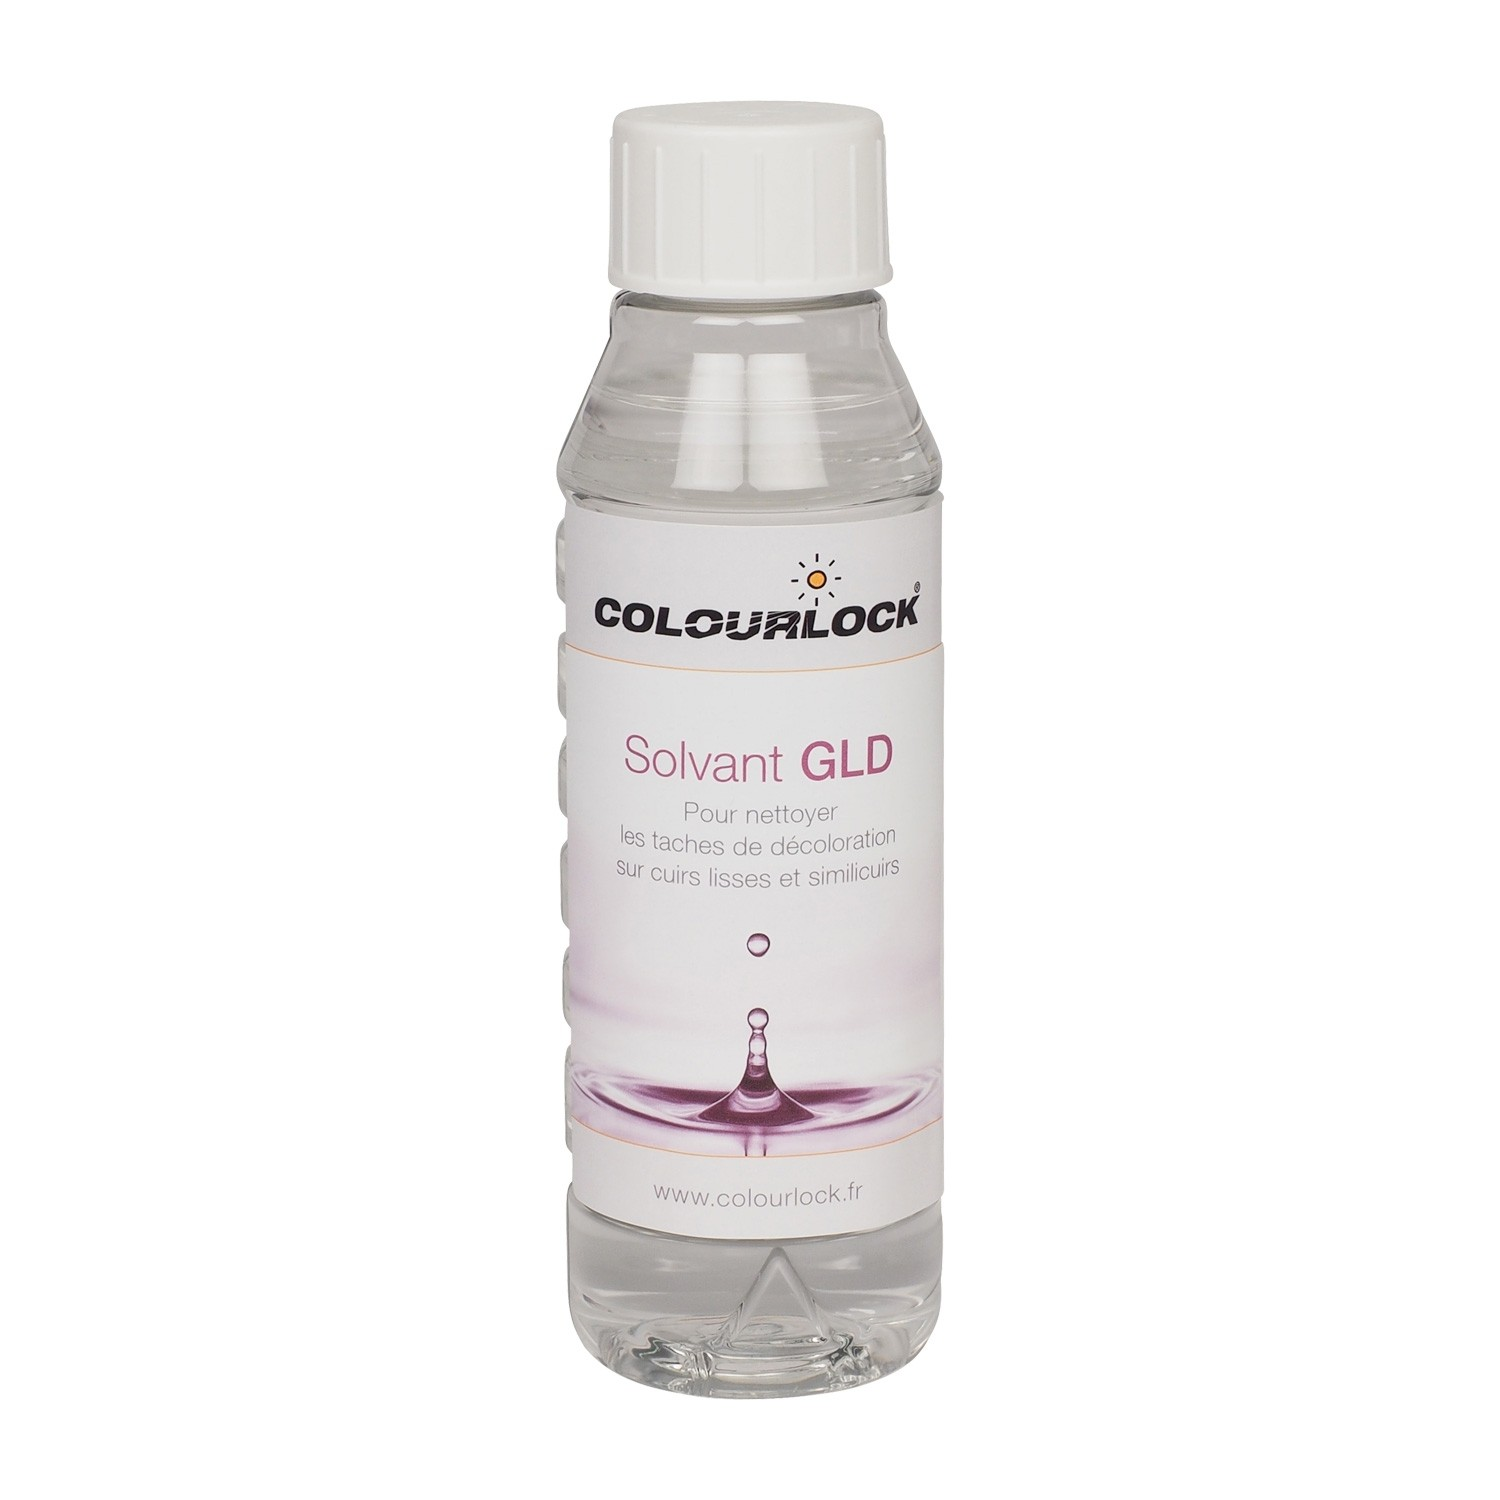 Solvant GLD COLOURLOCK, 225 ml